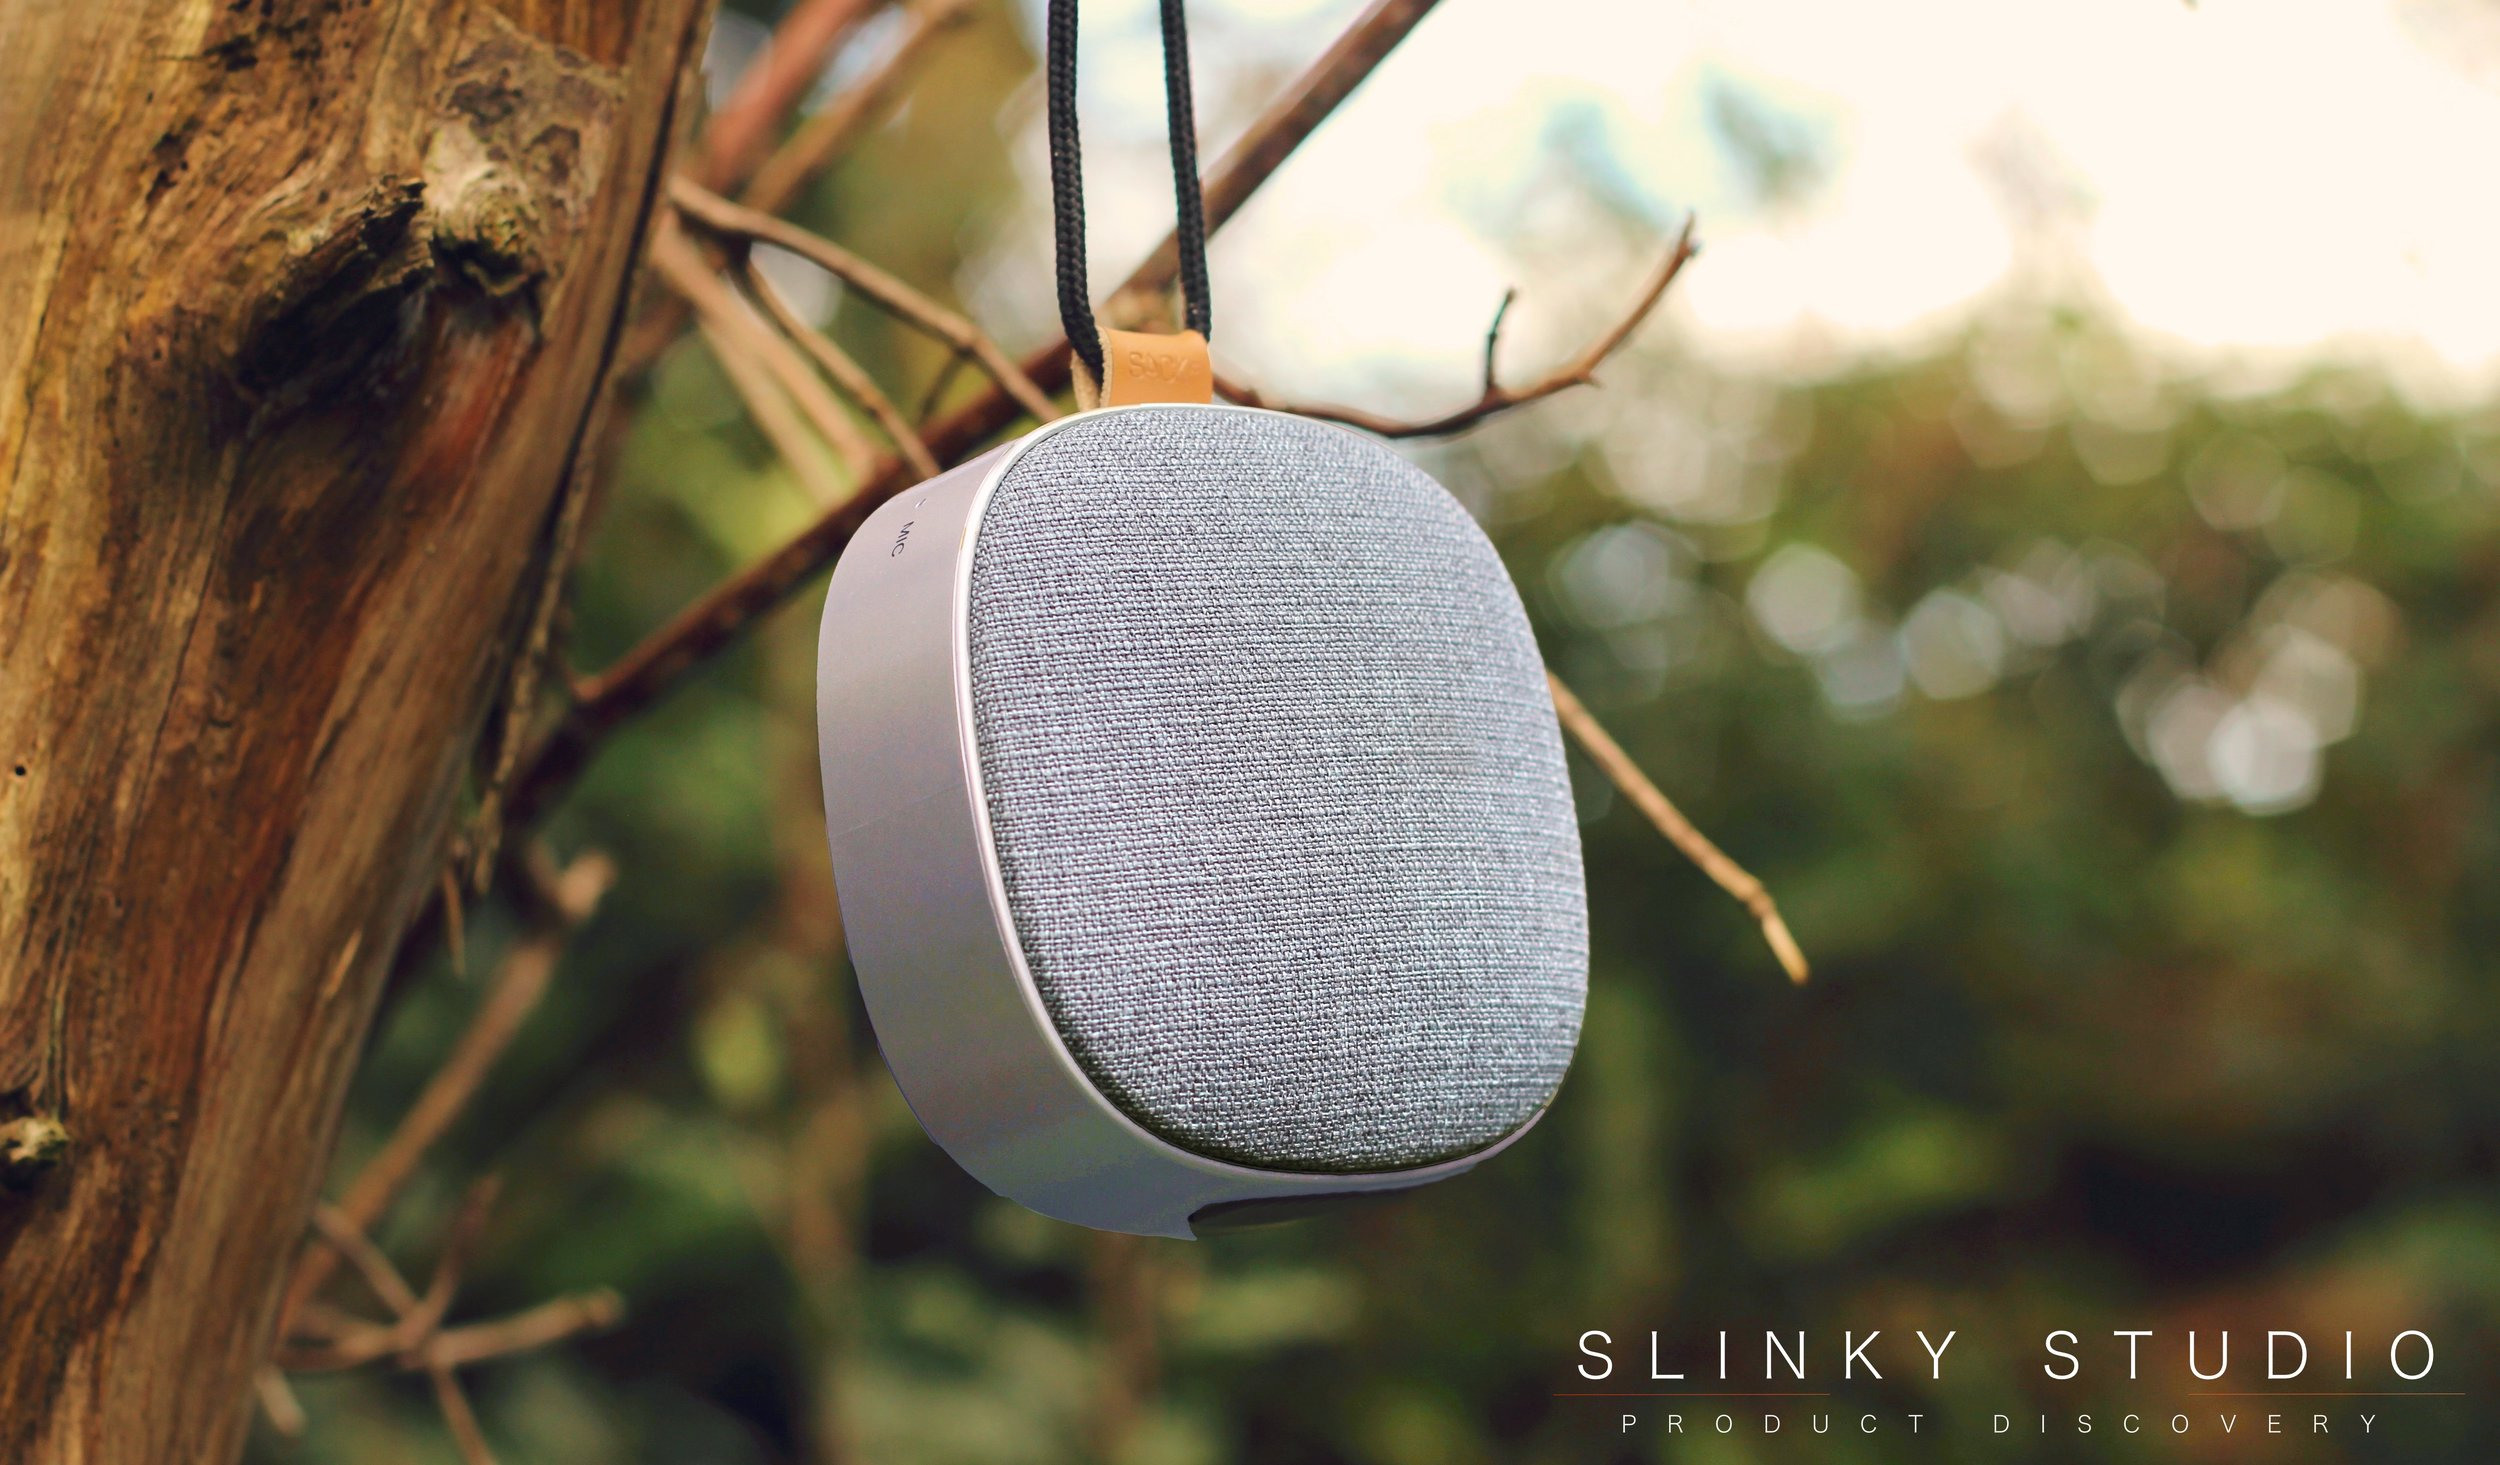 SACKit WOOFit Go Speaker Hanging from tree branch.jpg